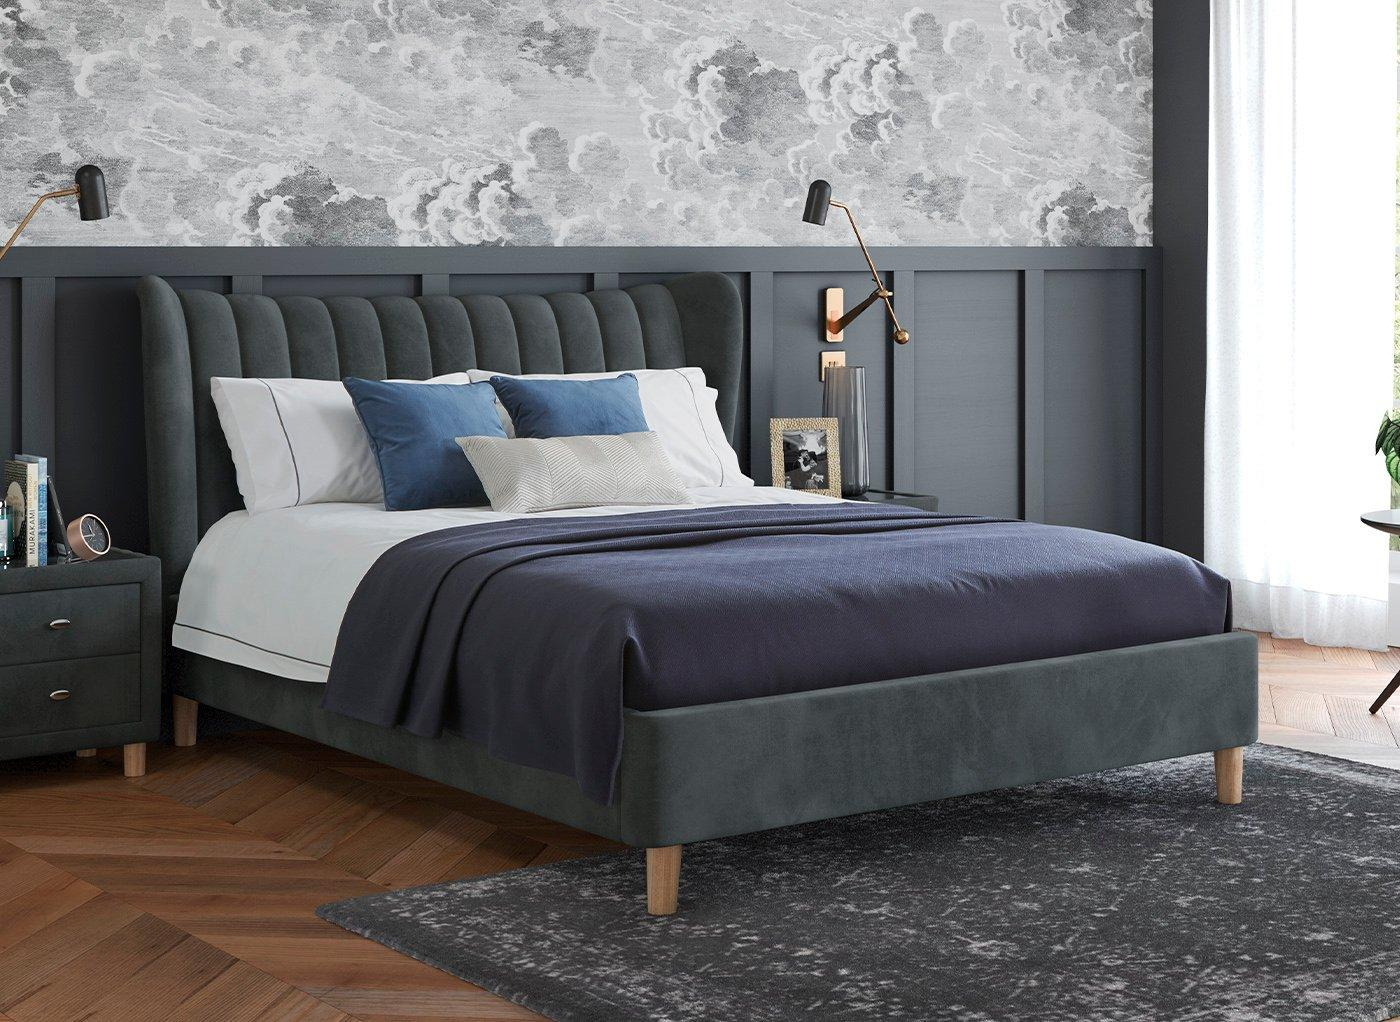 Knox Upholstered Bed Frame 6'0 Super king GREY